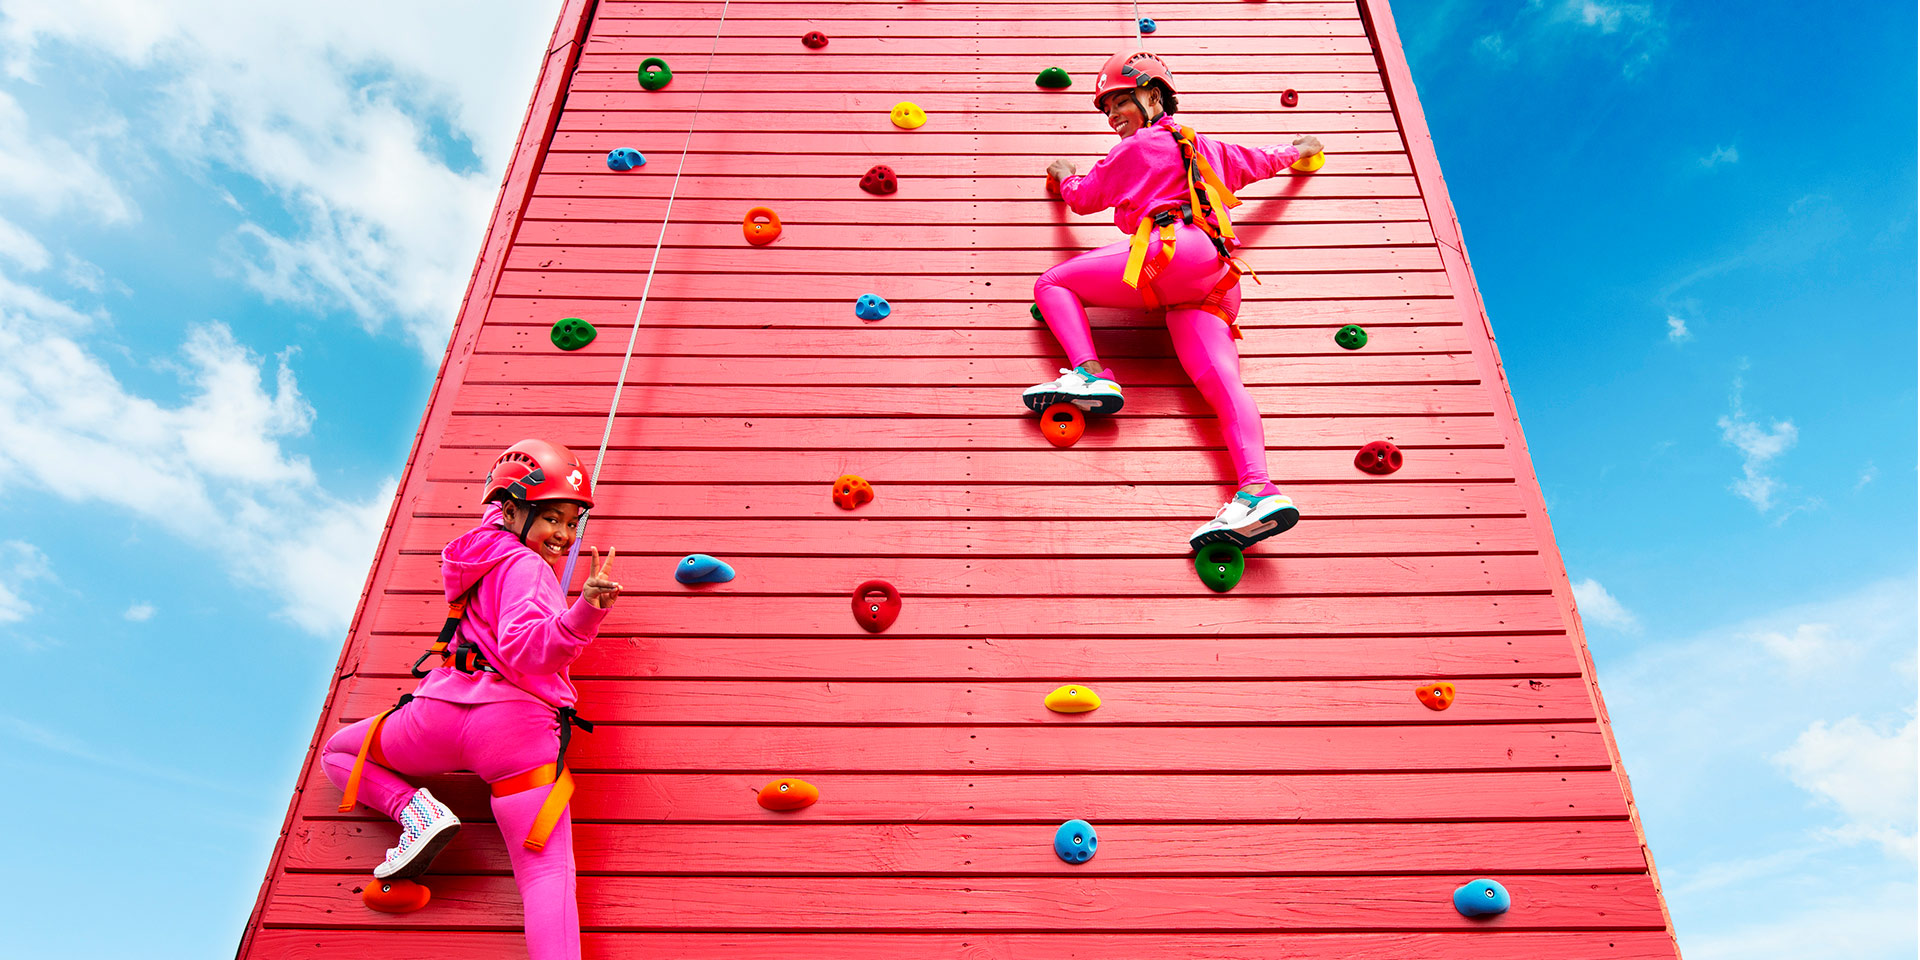 two people in pink climbing up a red rock climbing wall